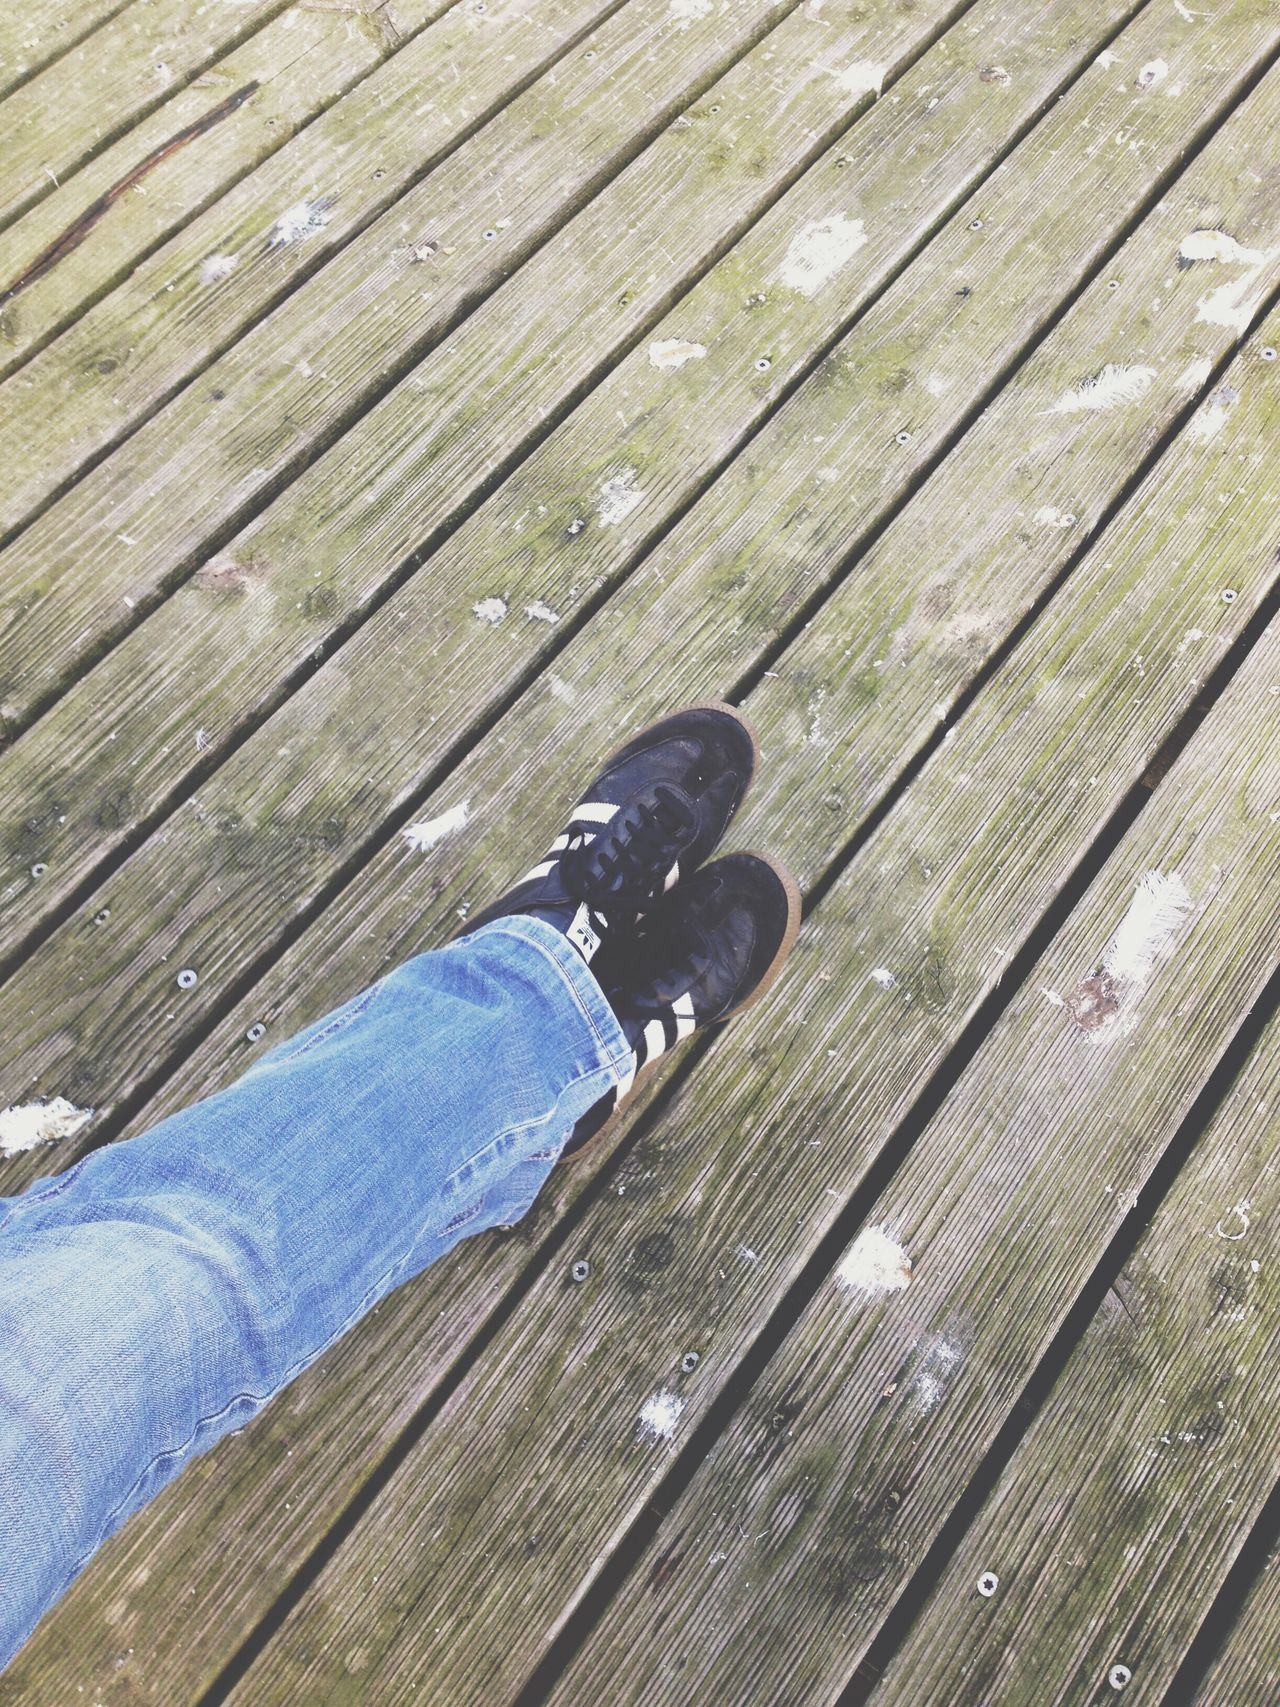 TCPM Calm Resting Relaxing Relaxing Moments Human Leg Wood - Material Low Section Shoe Human Body Part One Person High Angle View Real People Jeans Wood Paneling Leisure Activity Lifestyles Outdoors One Man Only People Photography Out Of The Box Place Of Heart